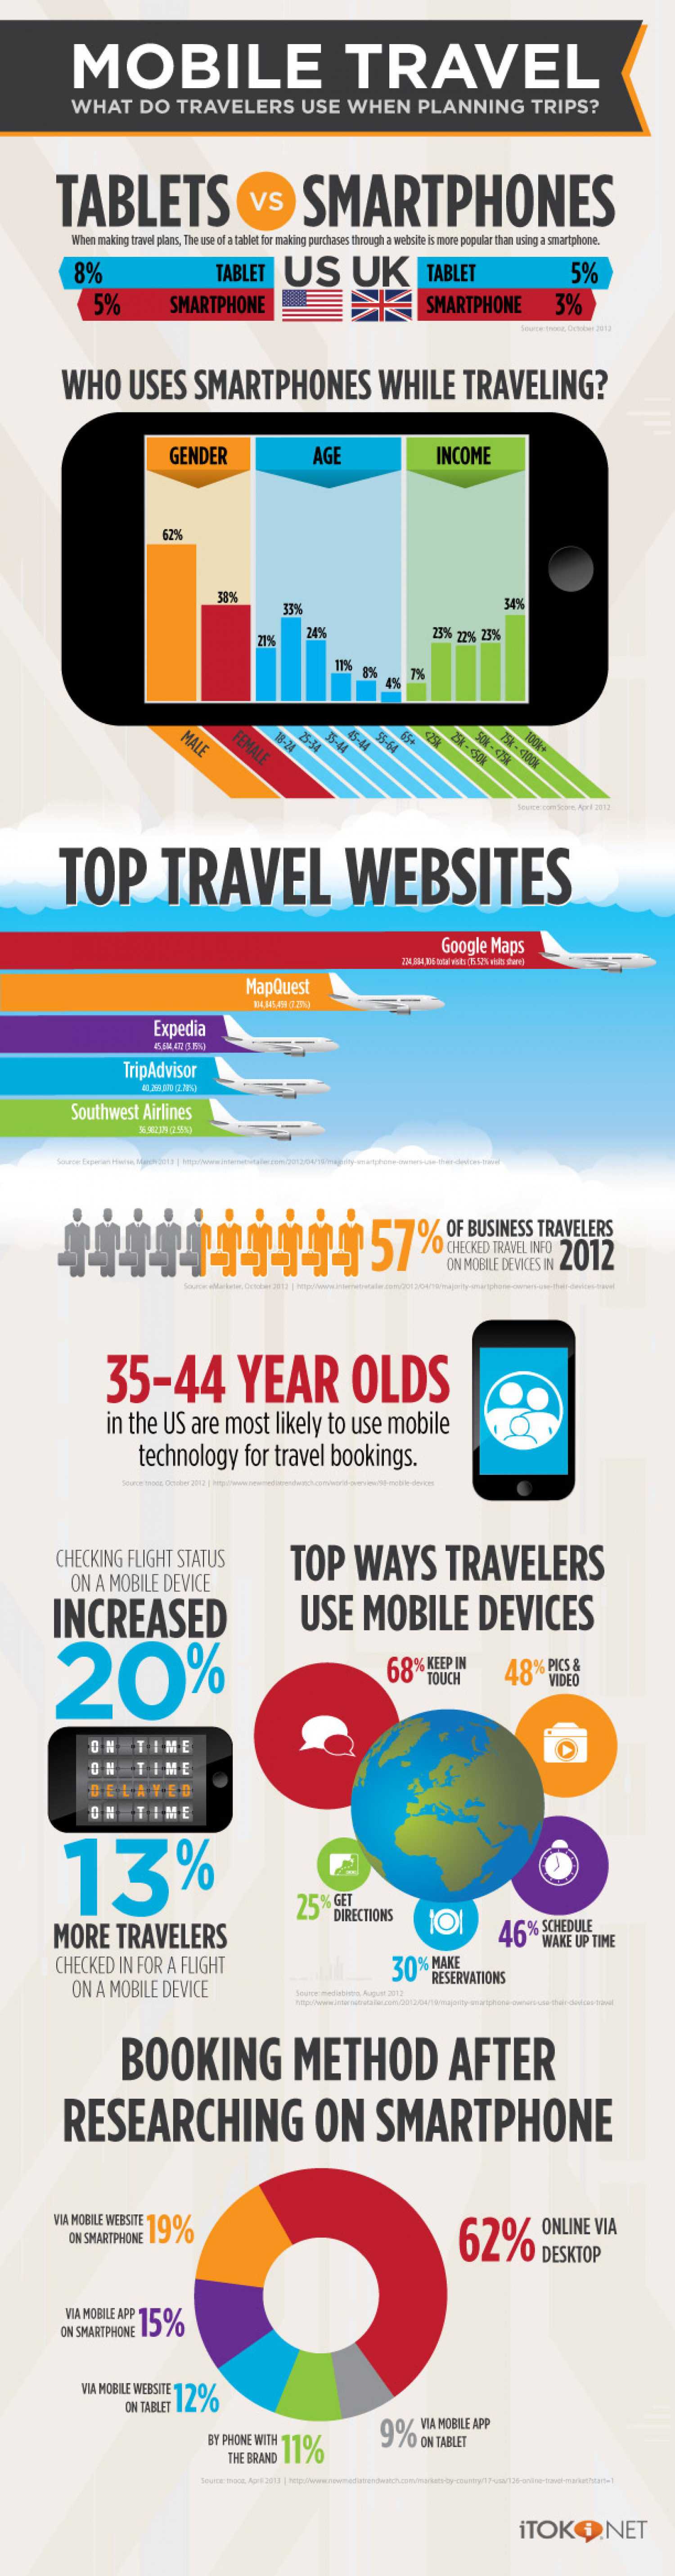 Mobile Travel Smartphones vs. Tablets Infographic